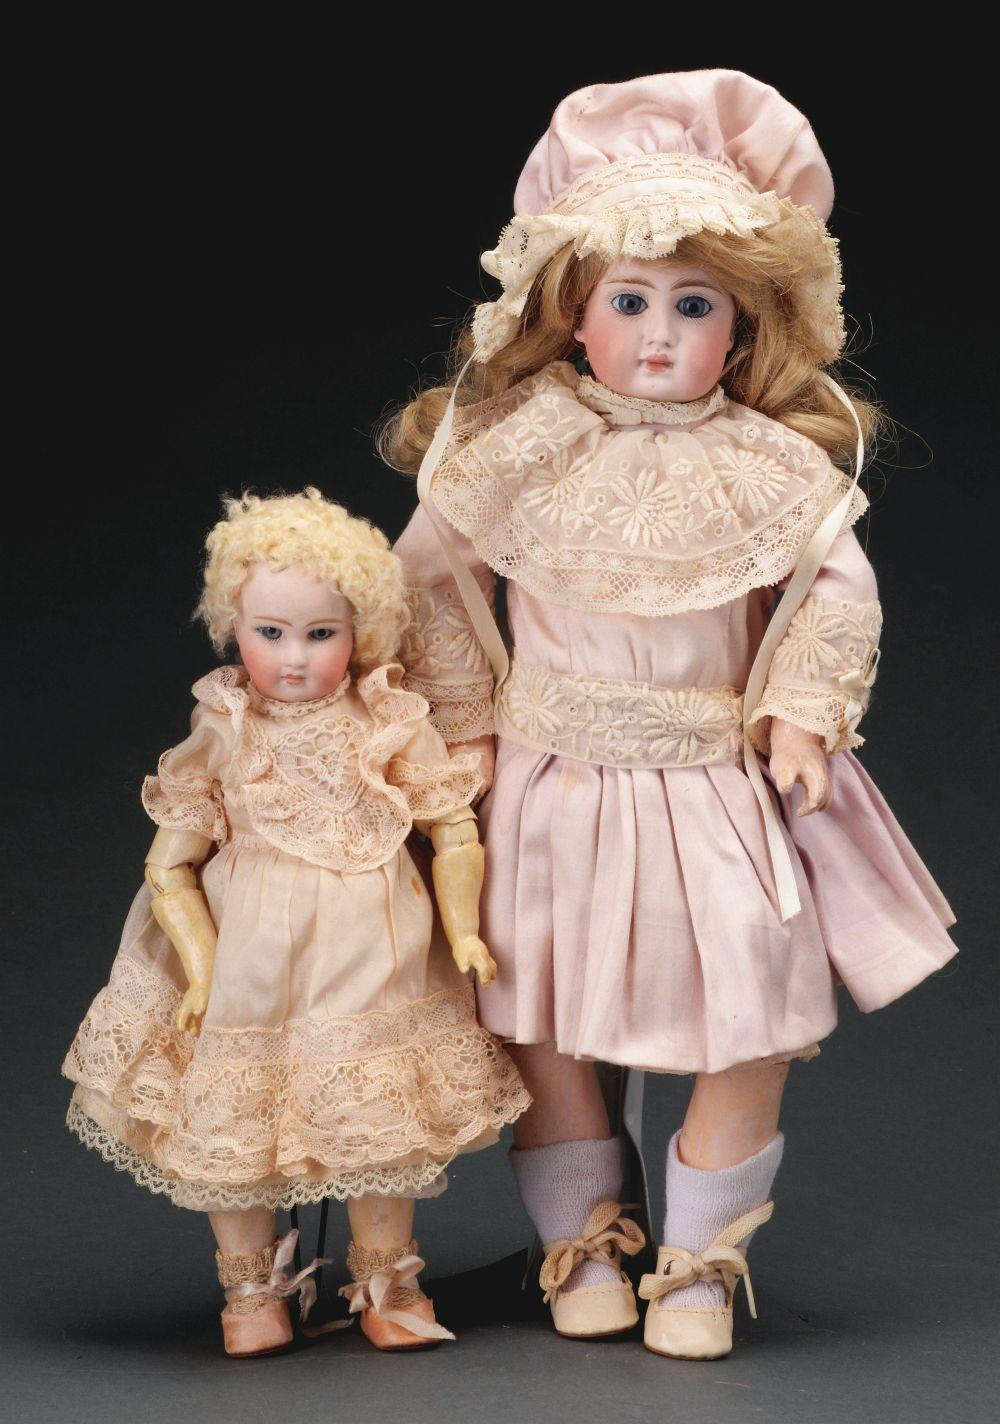 Lot of 2: Belton-Type Bisque Dolls.